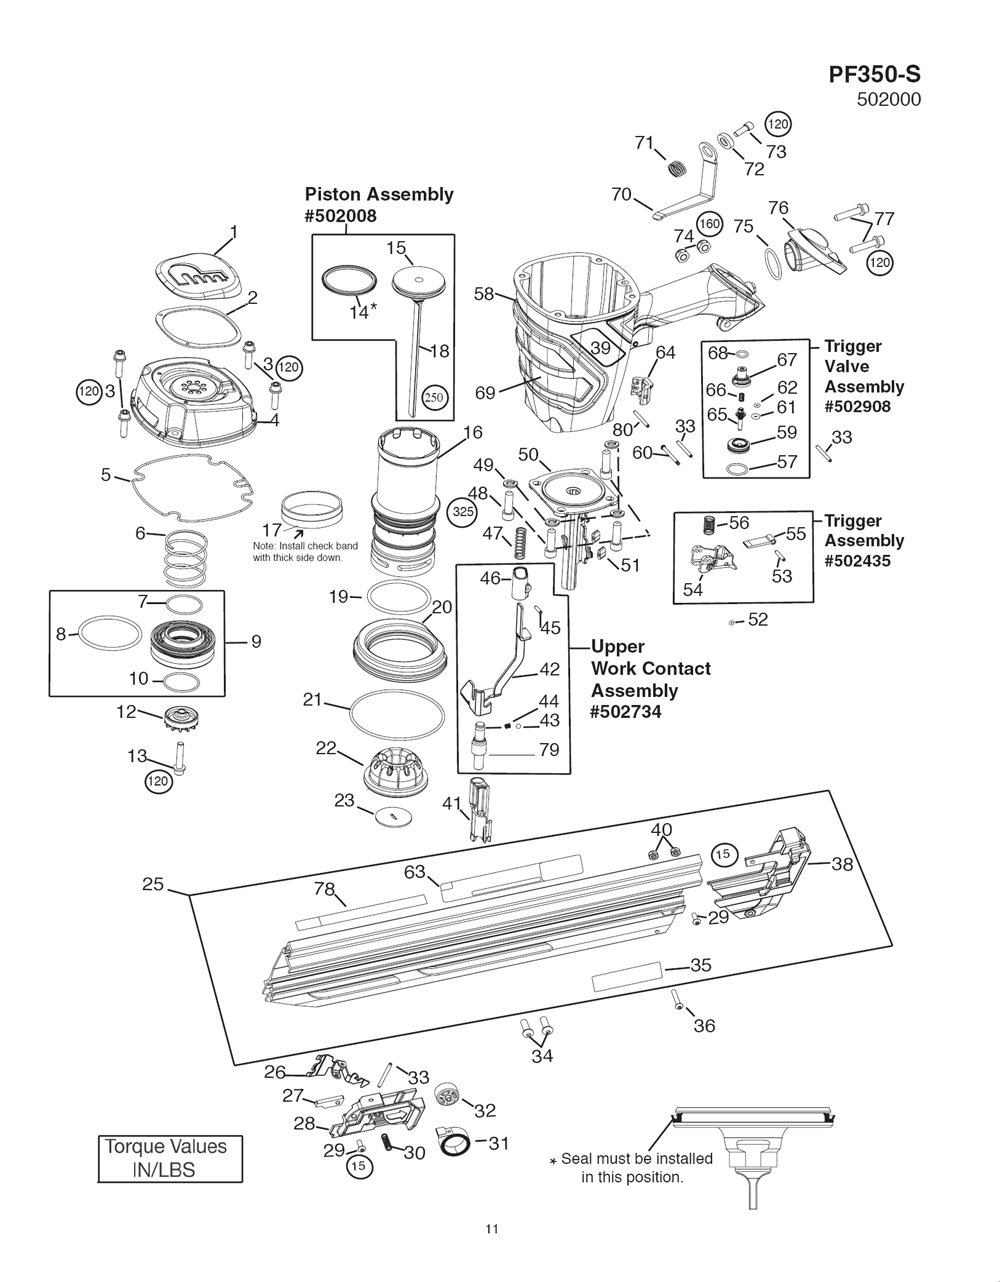 paslode 5325 80s parts diagram